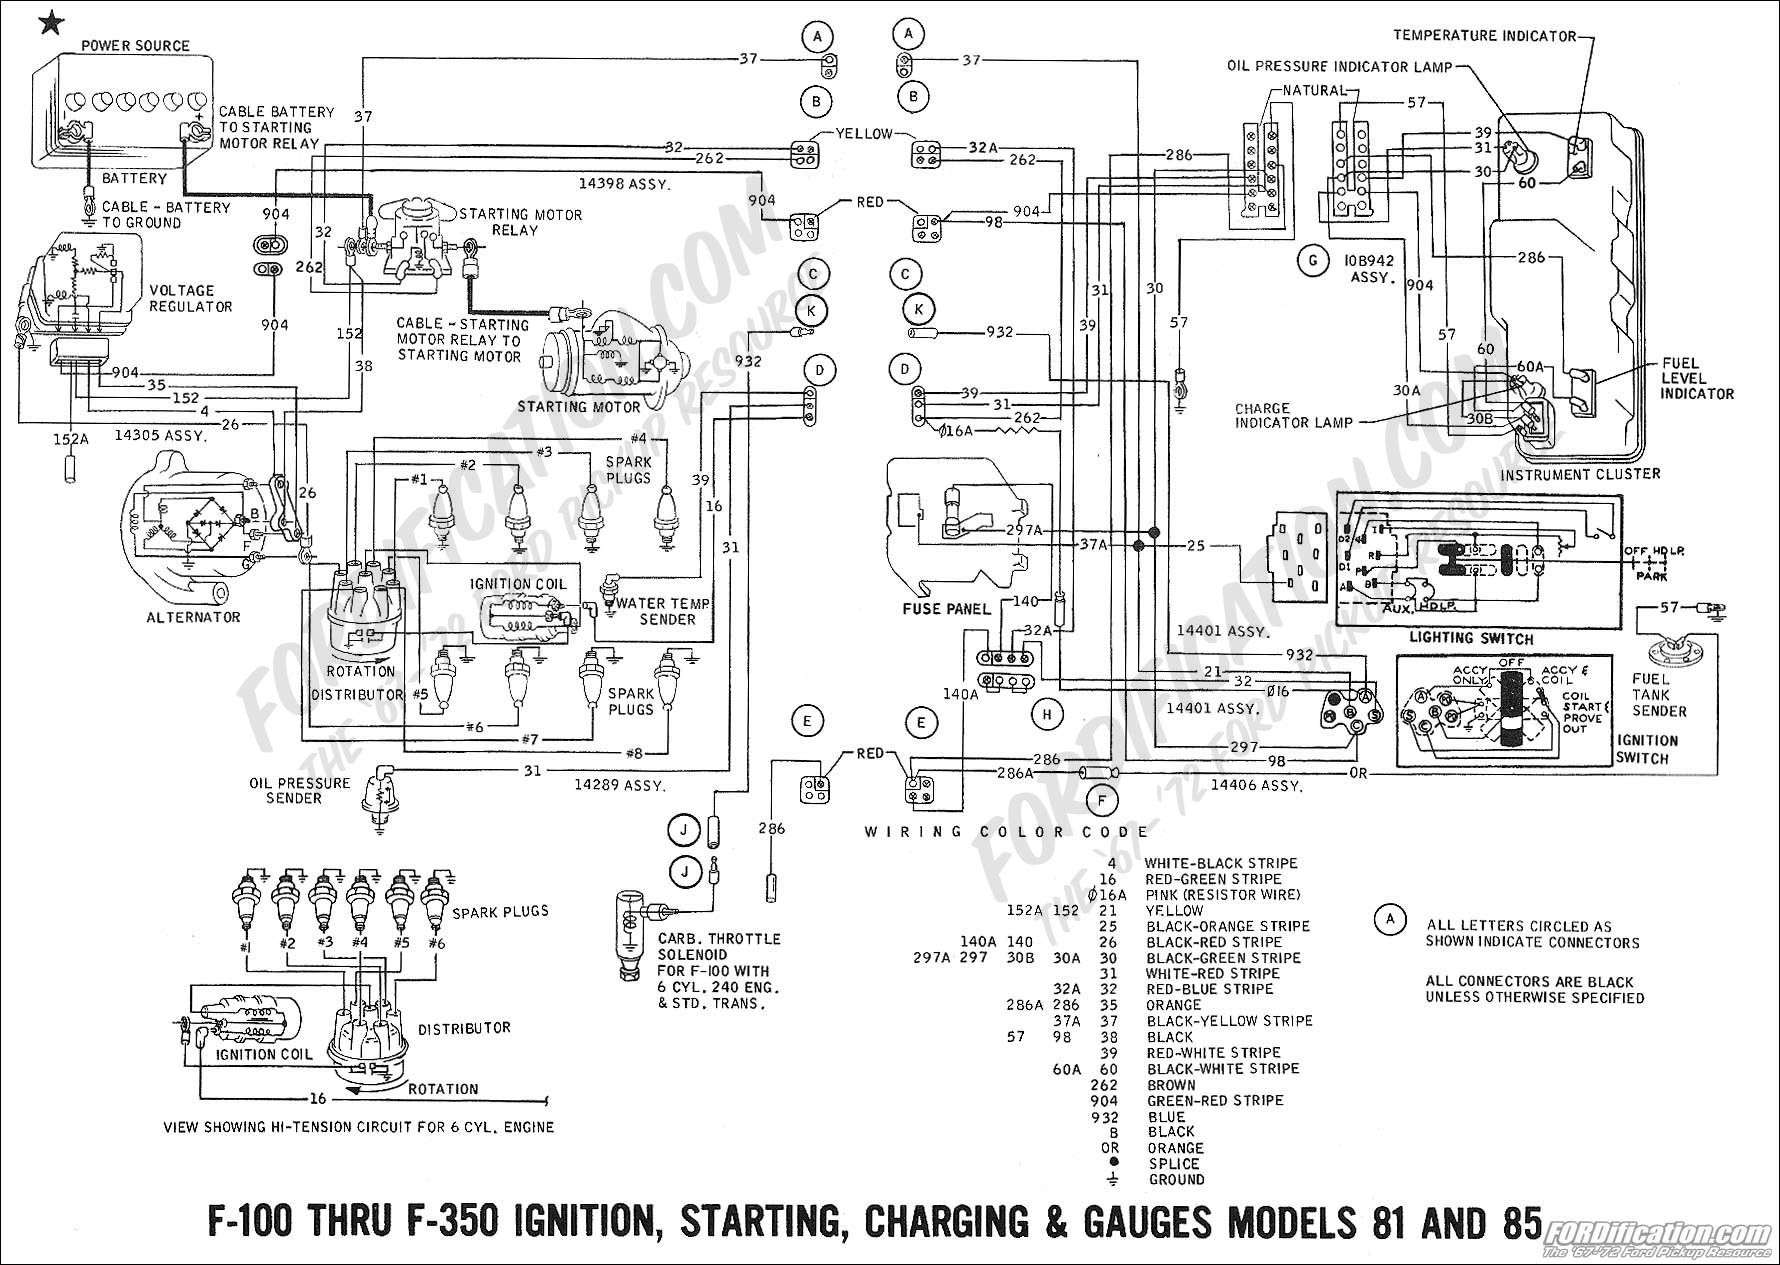 2003 Saturn Vue Engine Diagram Iwak Kutok Saturn Sl1 Engine Diagram Wiring Info • Of 2003 Saturn Vue Engine Diagram